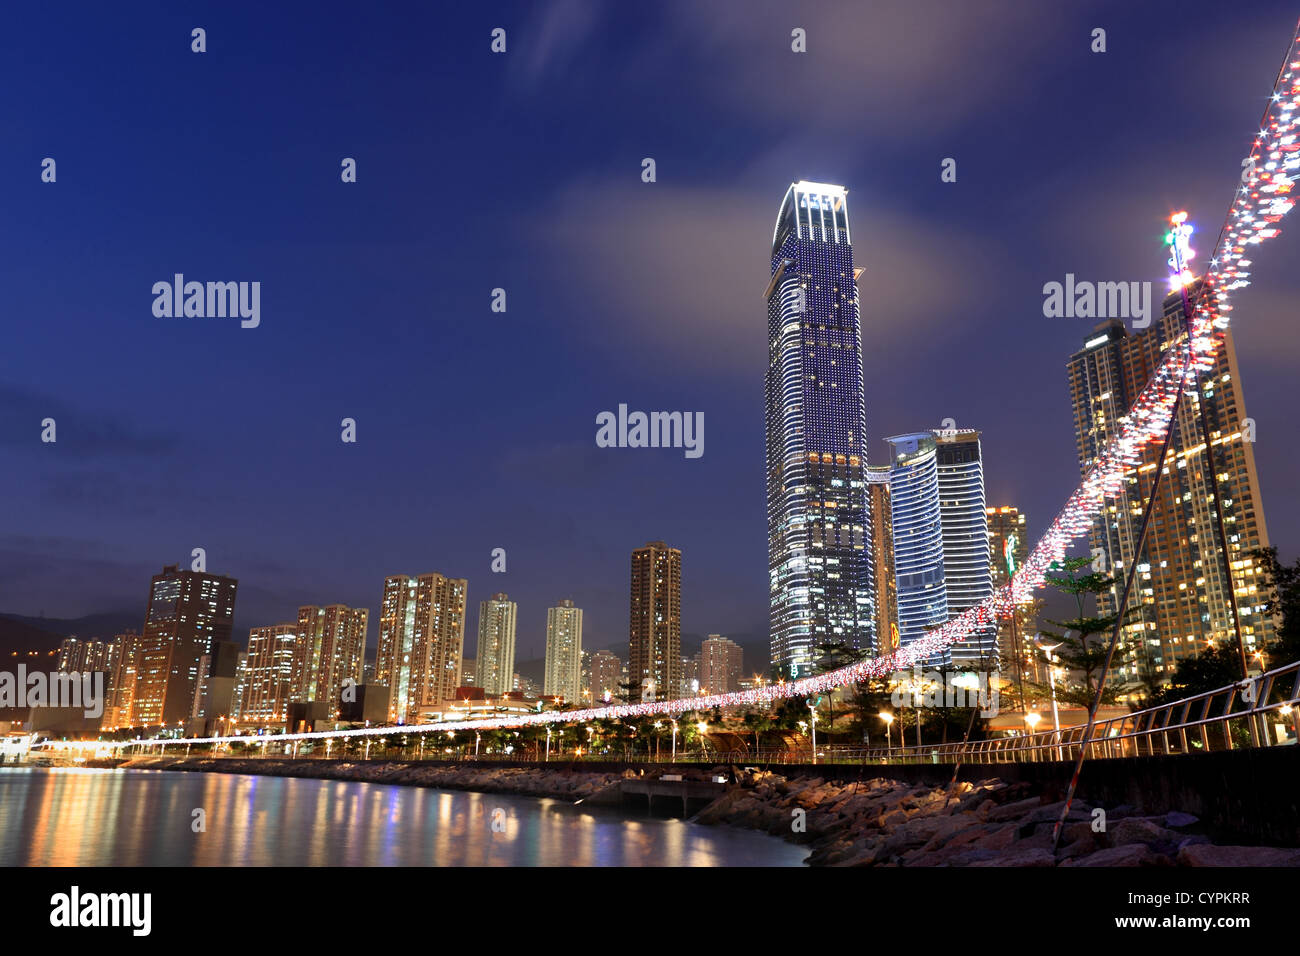 Hong Kong at night with highrise buildings - Stock Image